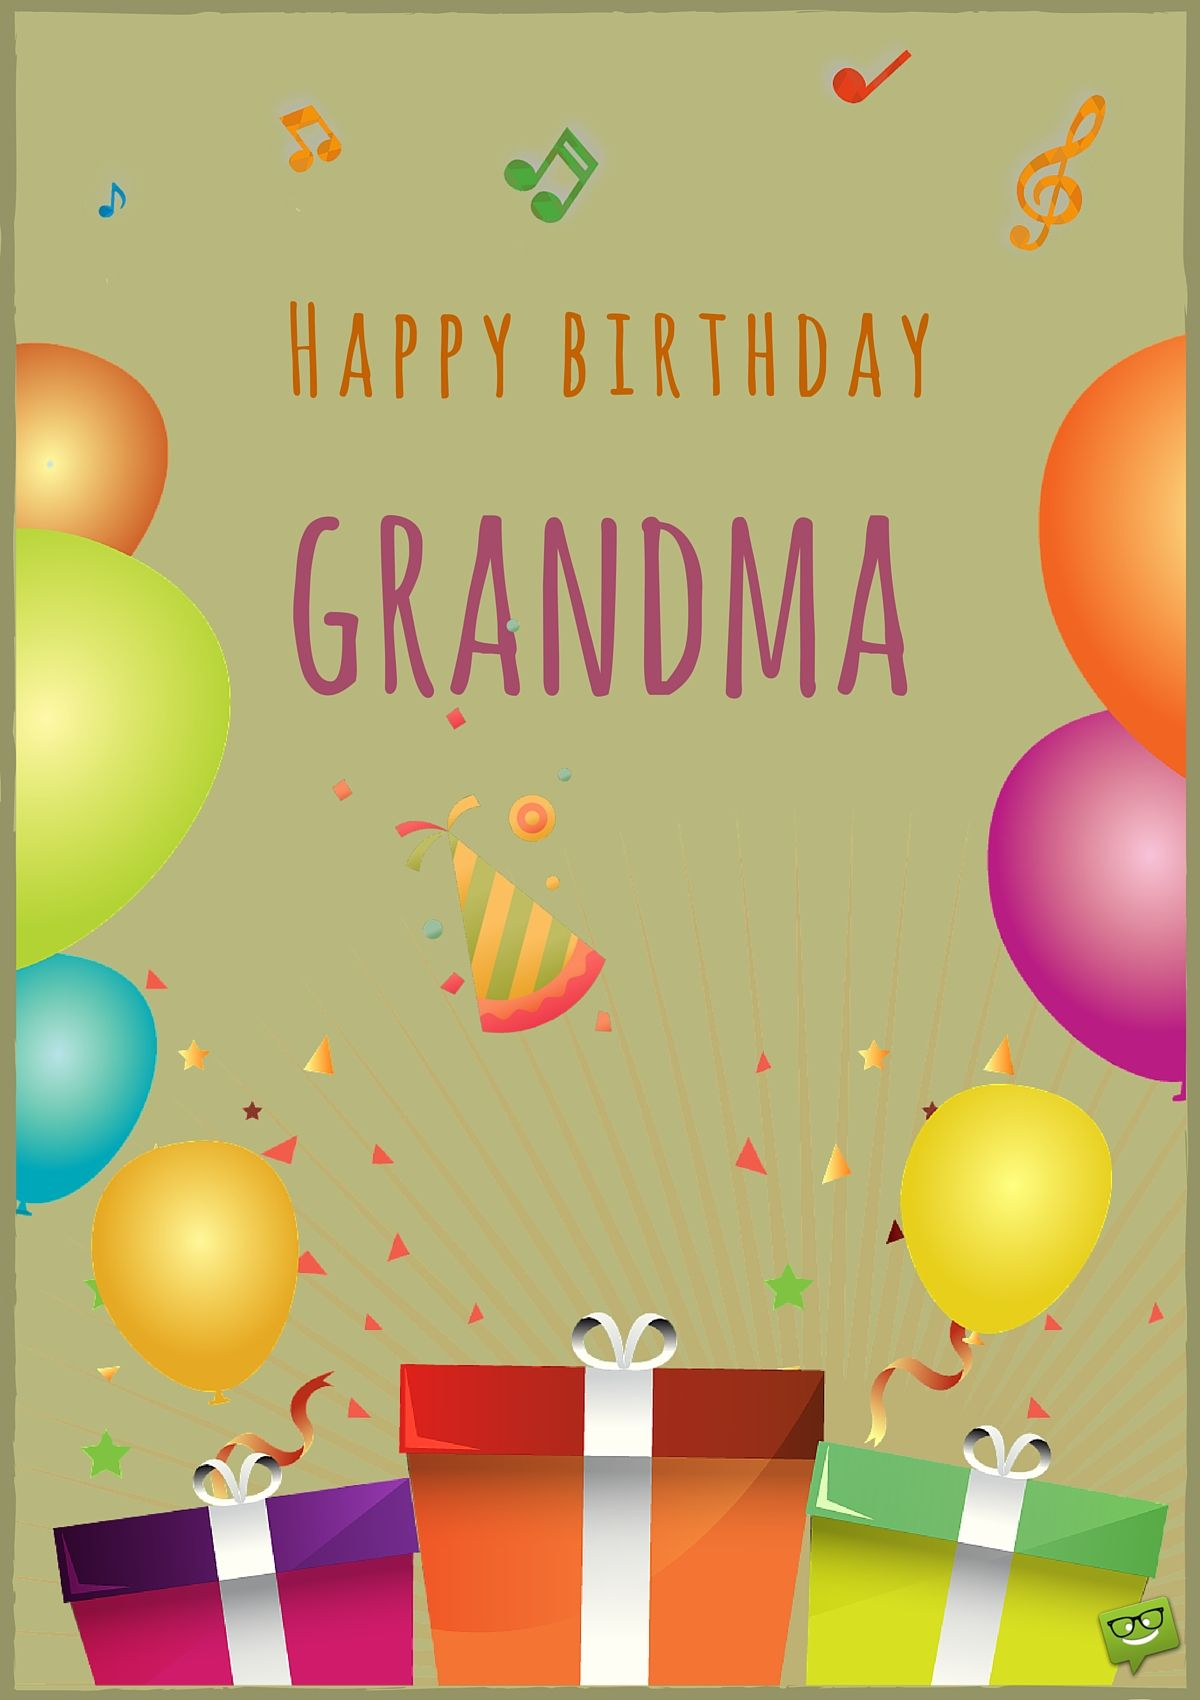 Happy Birthday Card For Grandma With Image Of Balloons And Gifts Wishes Expert